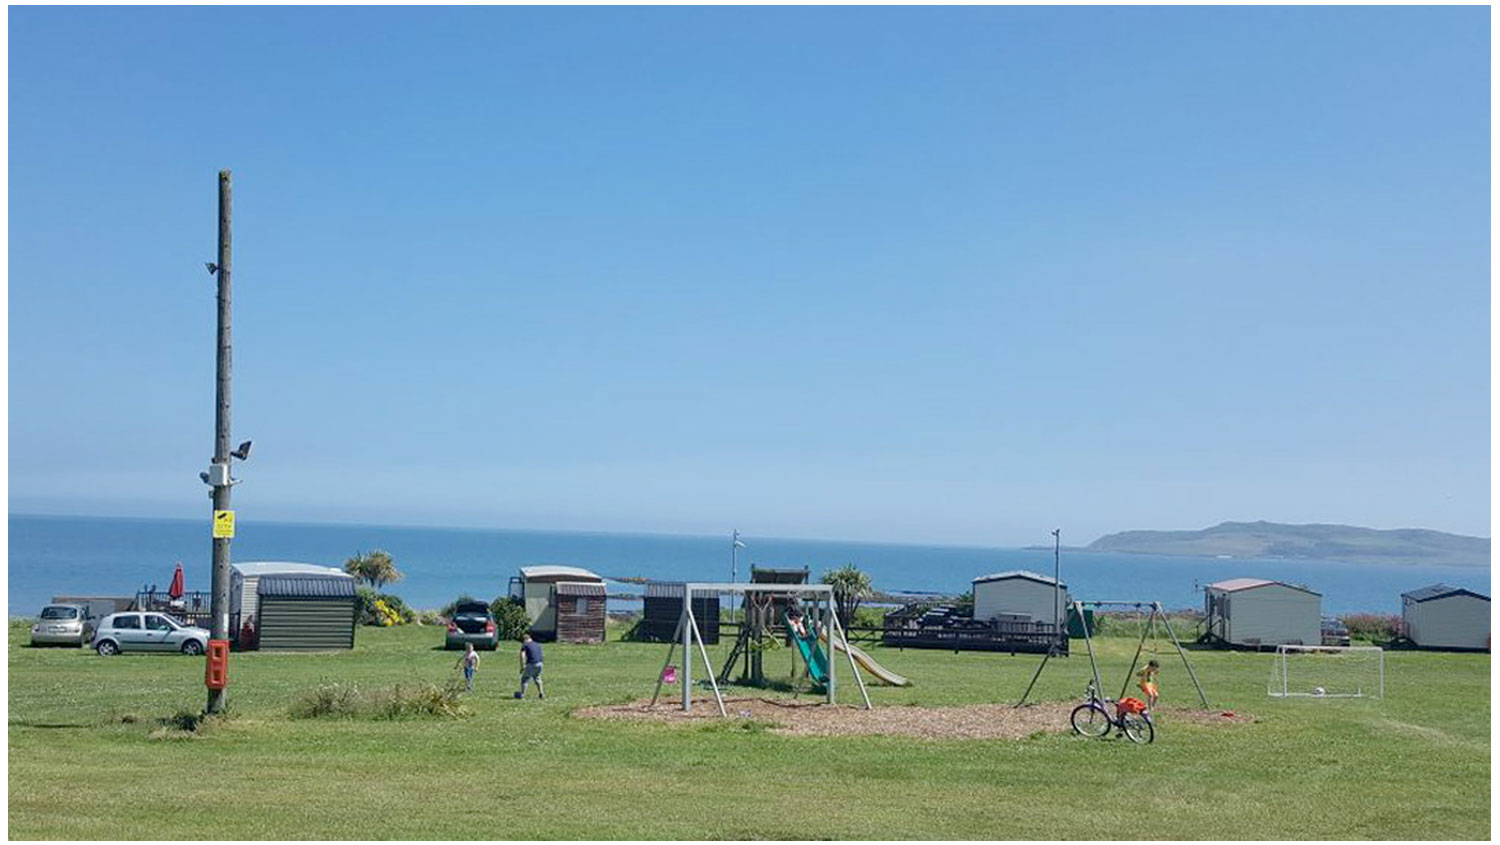 Playground-Area1-Camping, Campervans, Motorhomes - Lynders Mobile Home Park, Portrane:Donabate, North County Dublin, Fingal